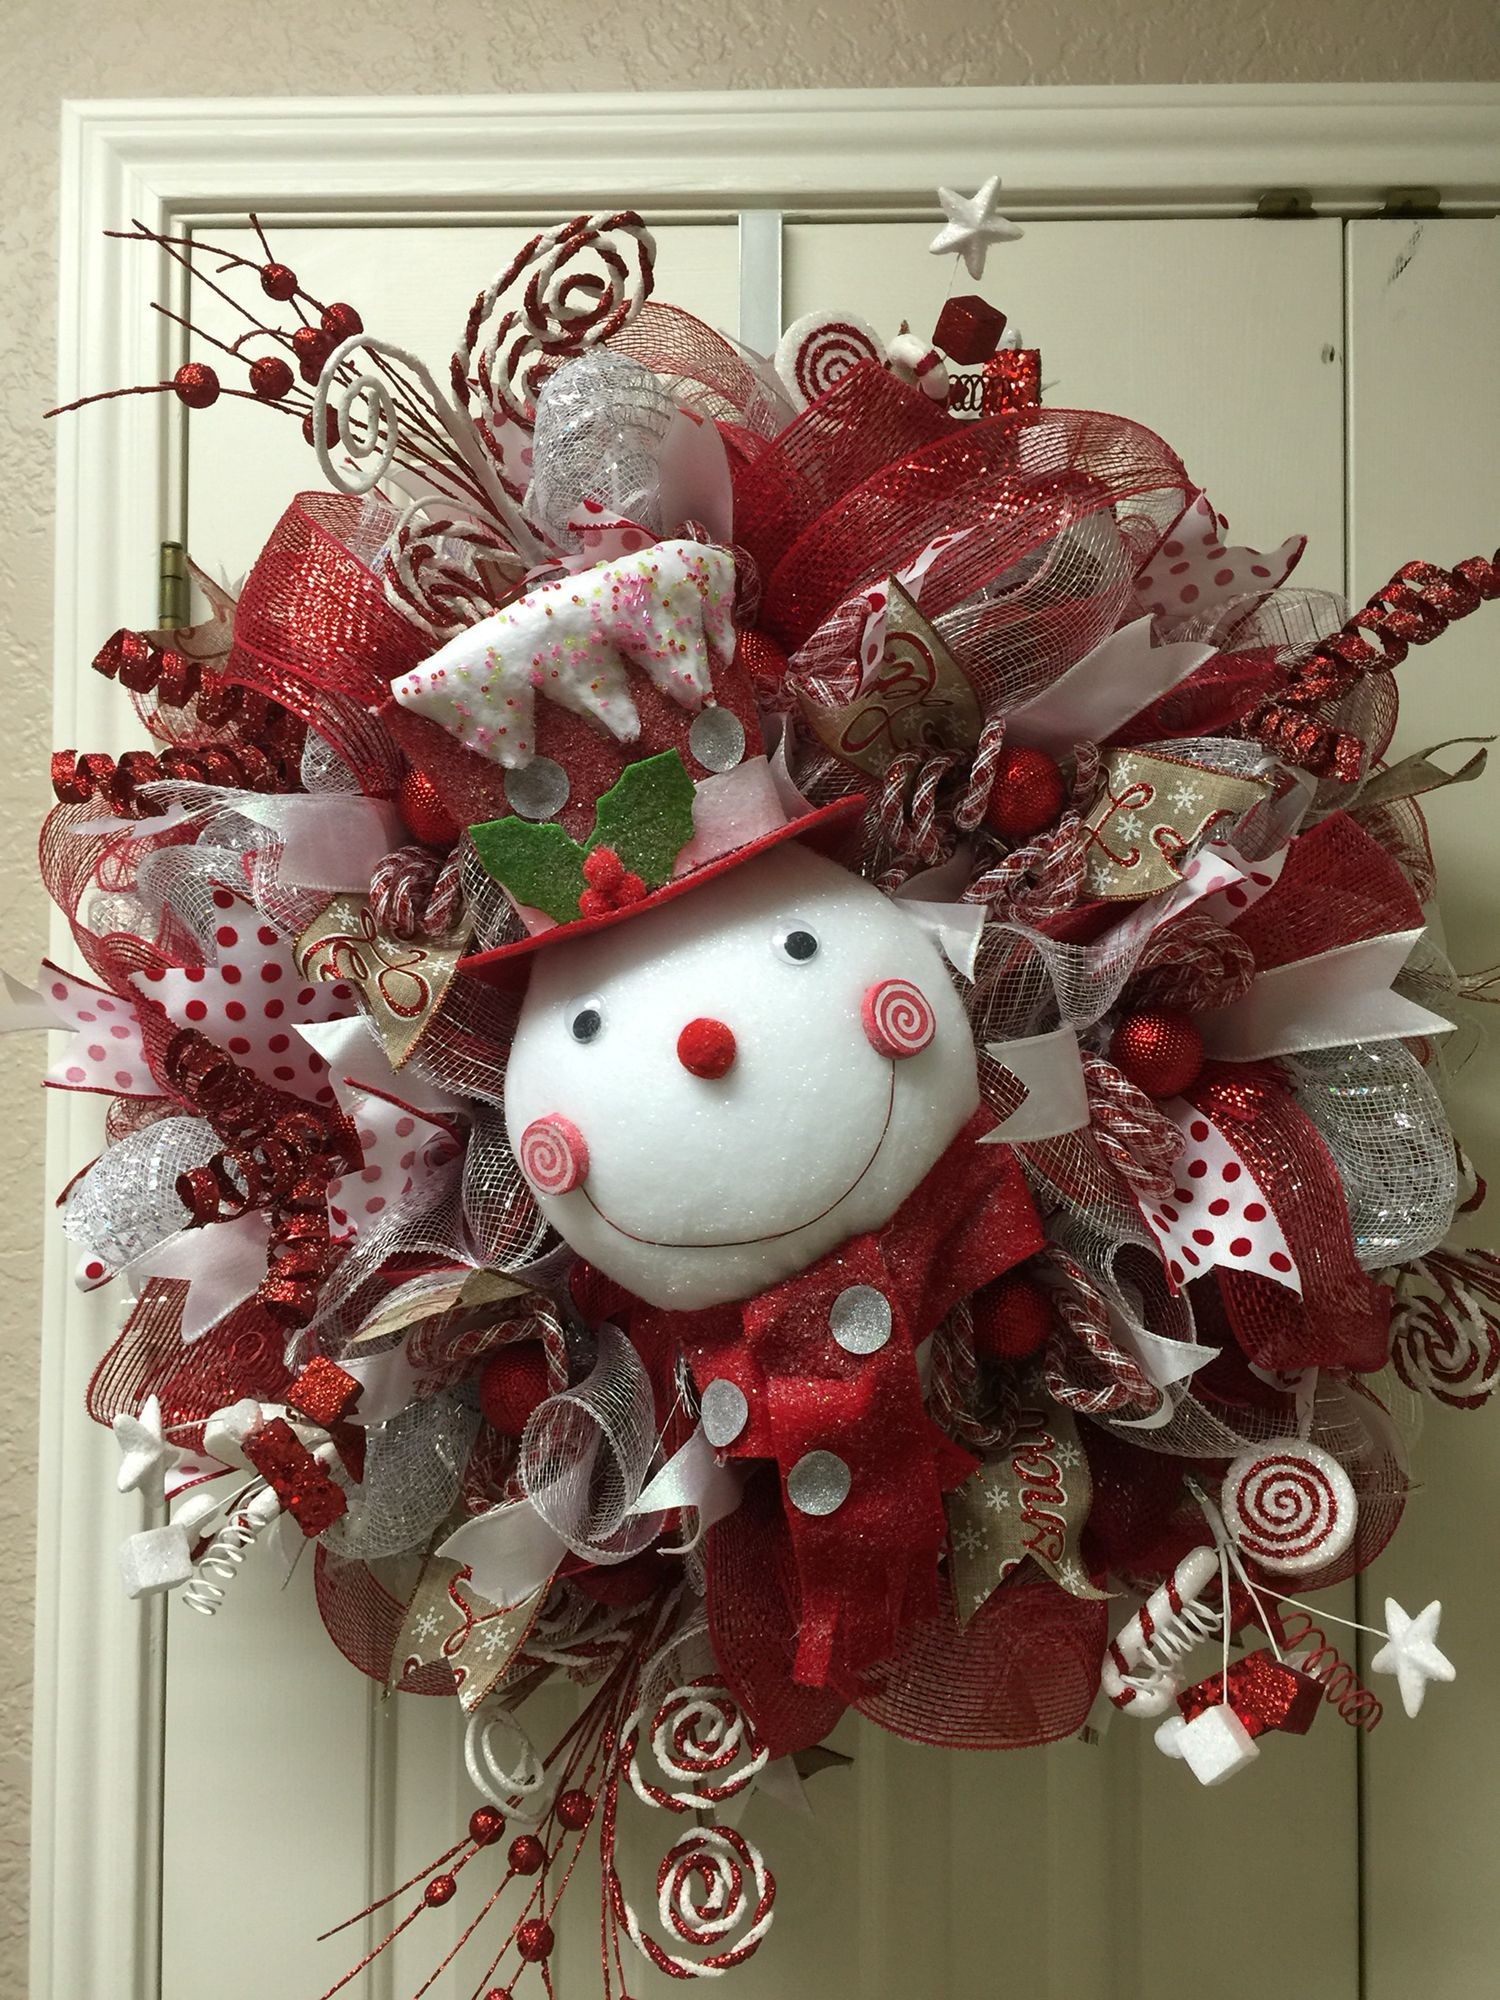 Best ideas about DIY Mesh Christmas Wreath . Save or Pin Snowman wreath by Twentycoats Wreath Creations Now.